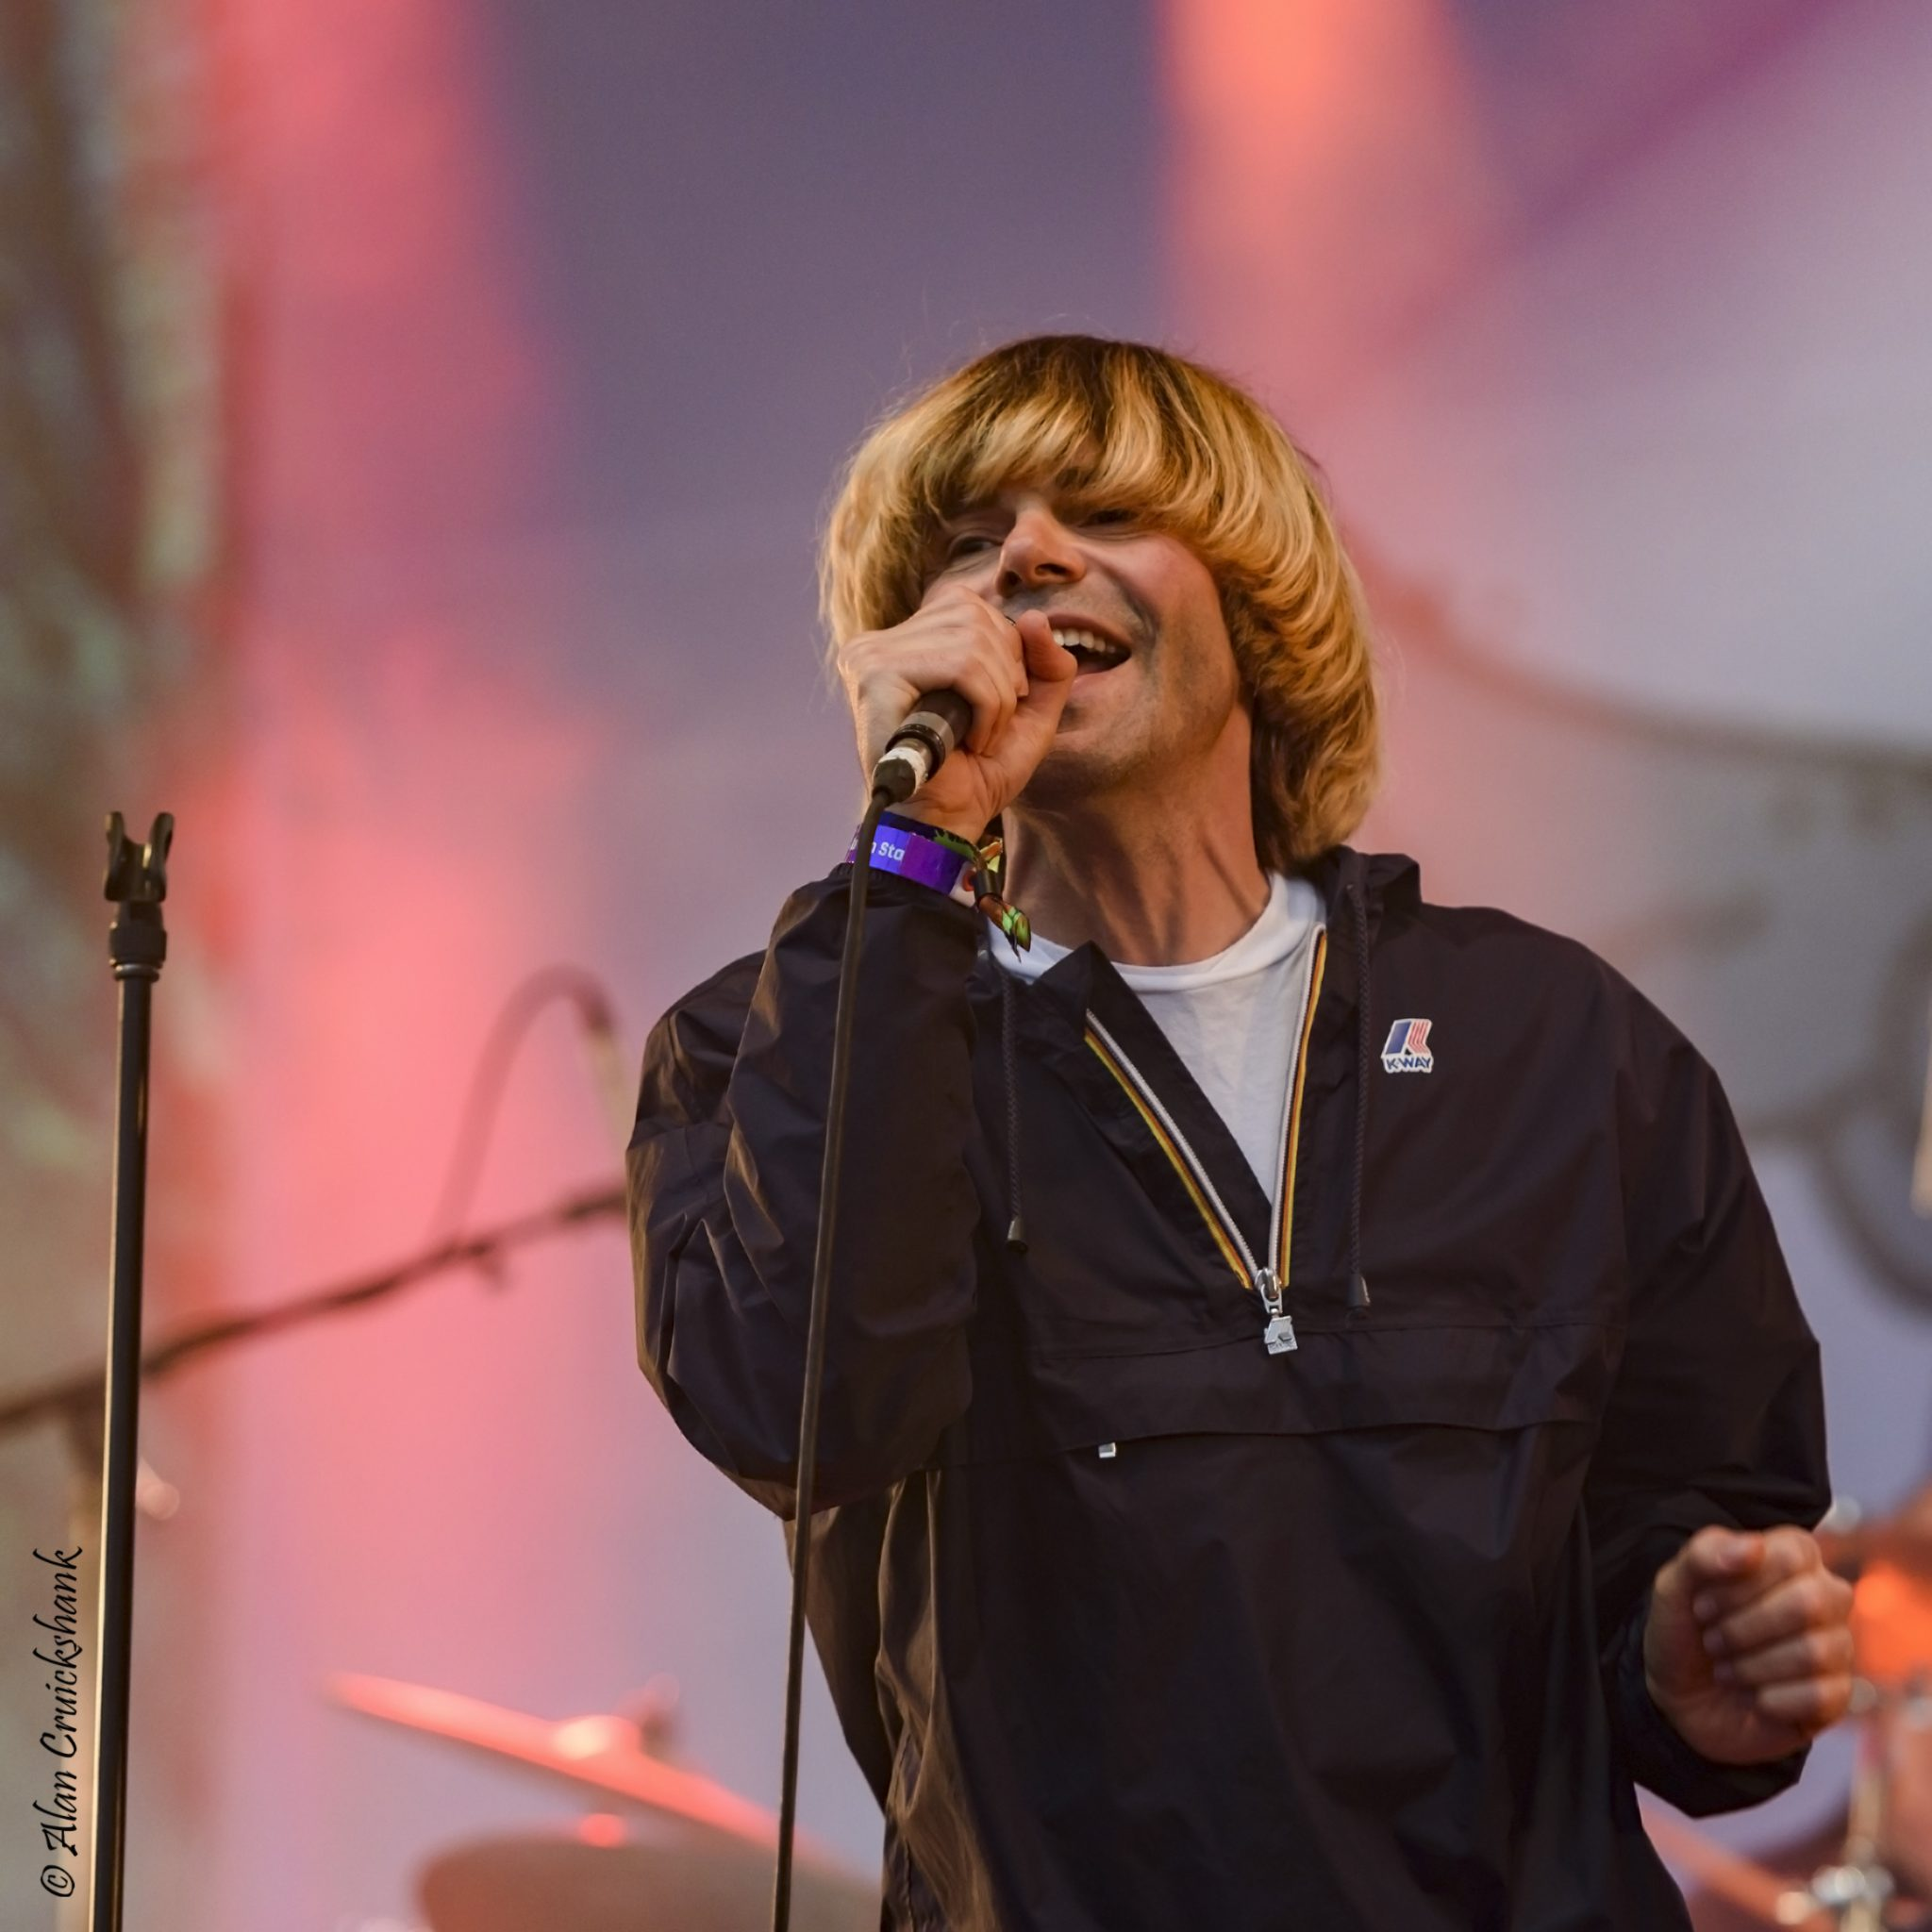 hnhG8 - The Charlatans, Friday Belladrum 2018 - IMAGES